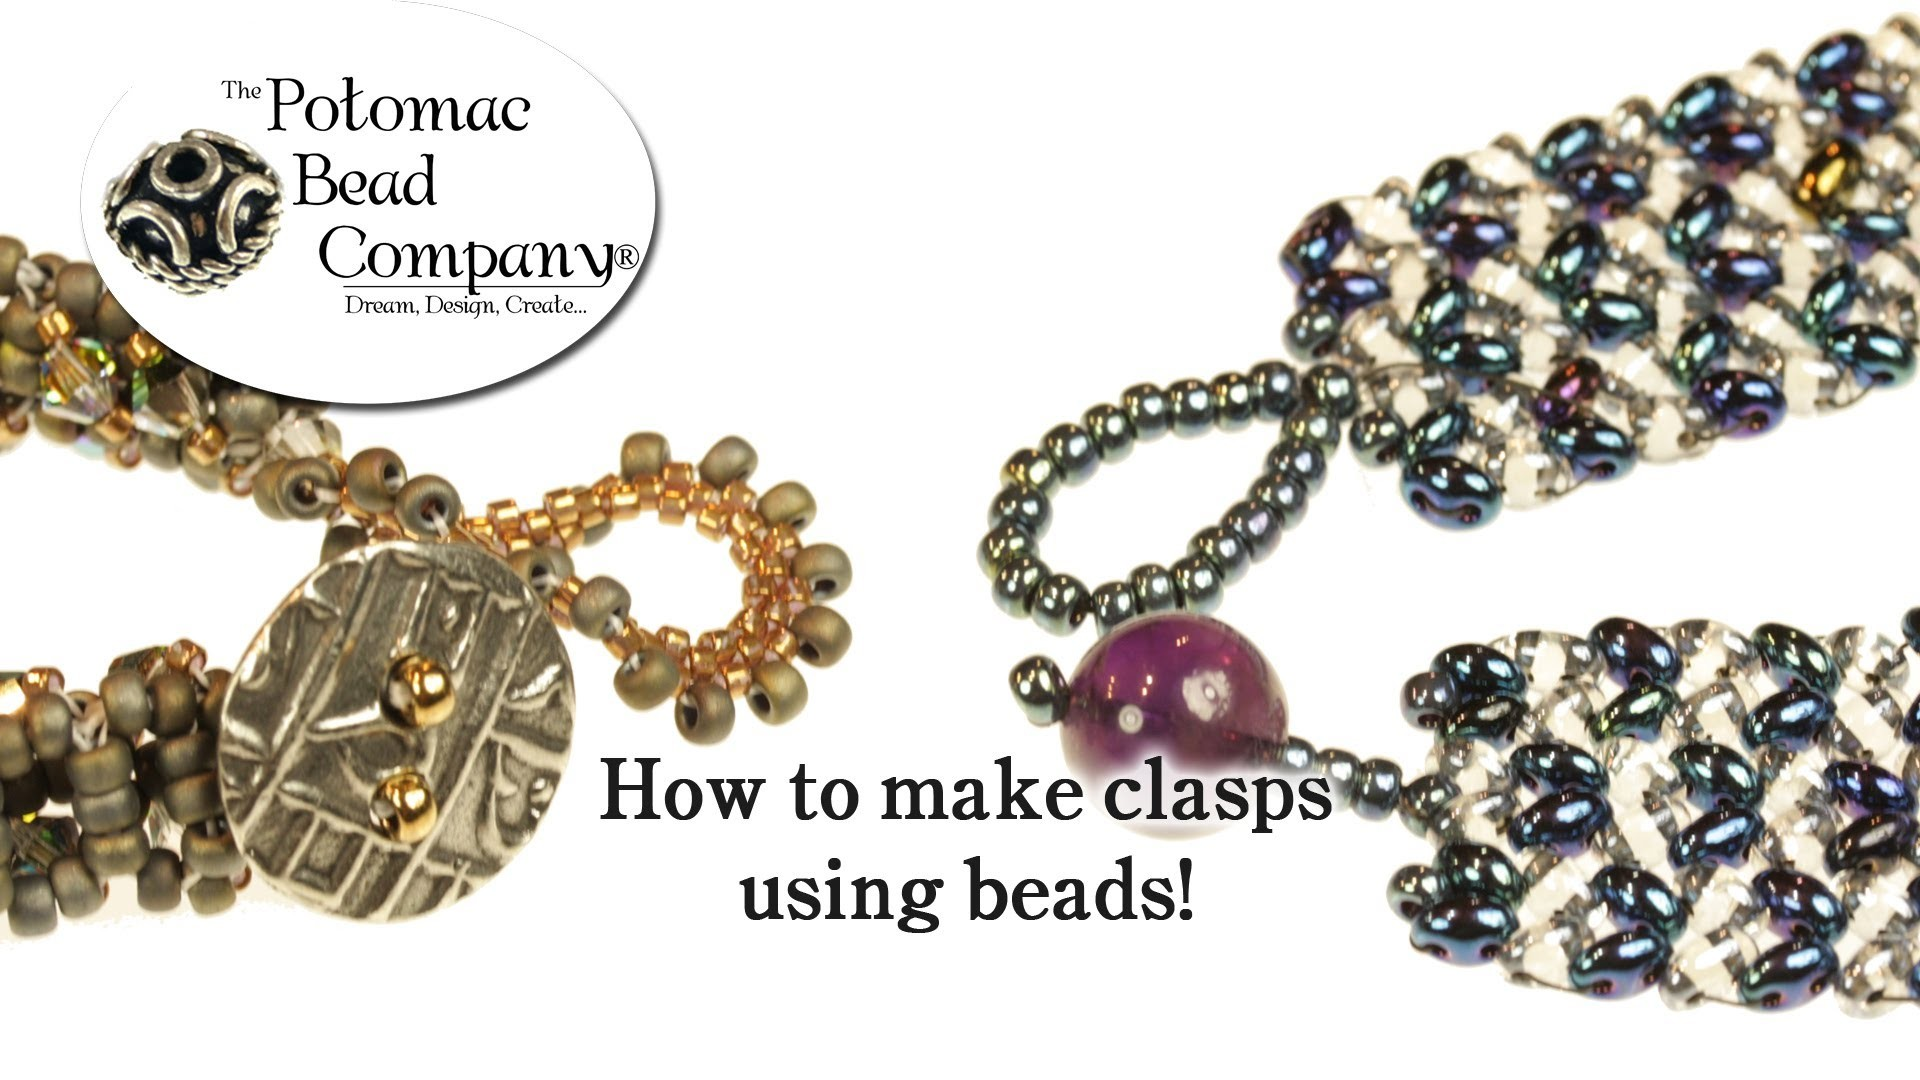 How to Make Clasps Using Beads